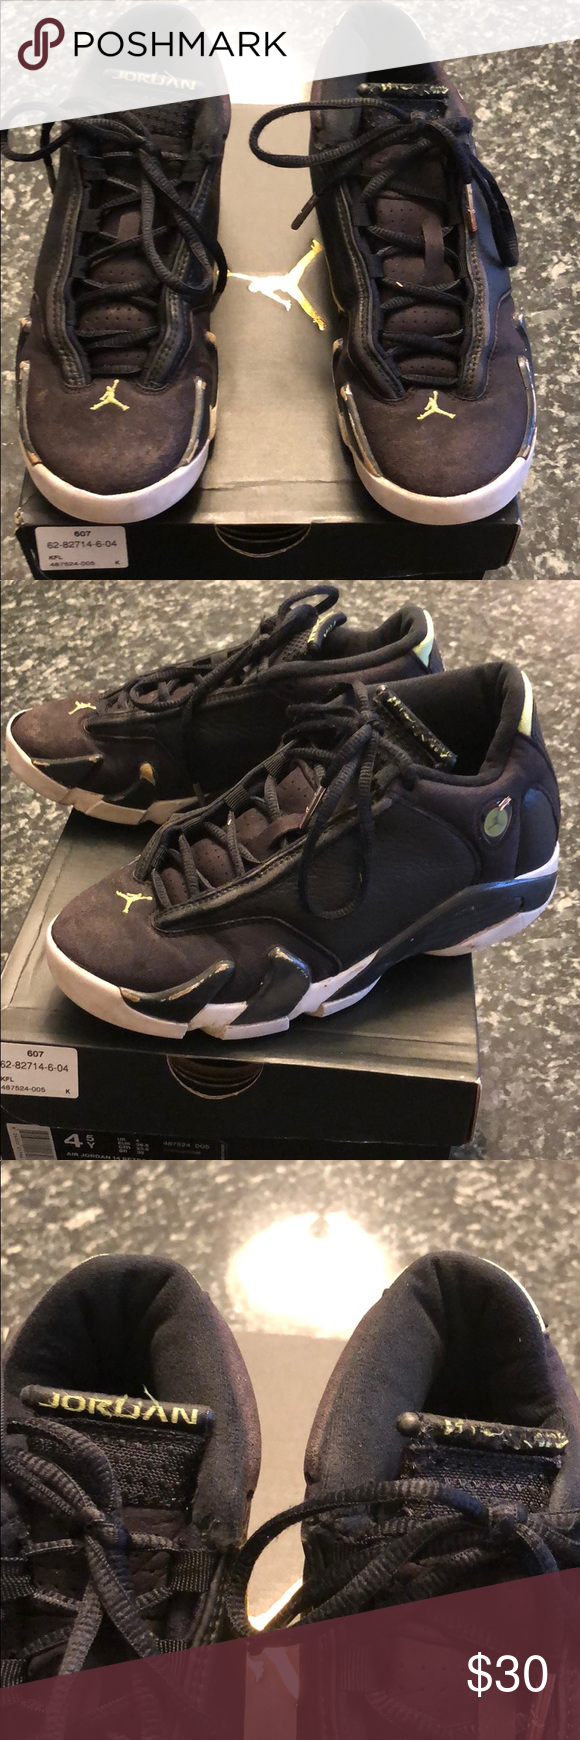 e9d3c15f30fad9 Air Jordan 14 Retro BG Size 4.5Y Used but still functional black Air  Jordan s.